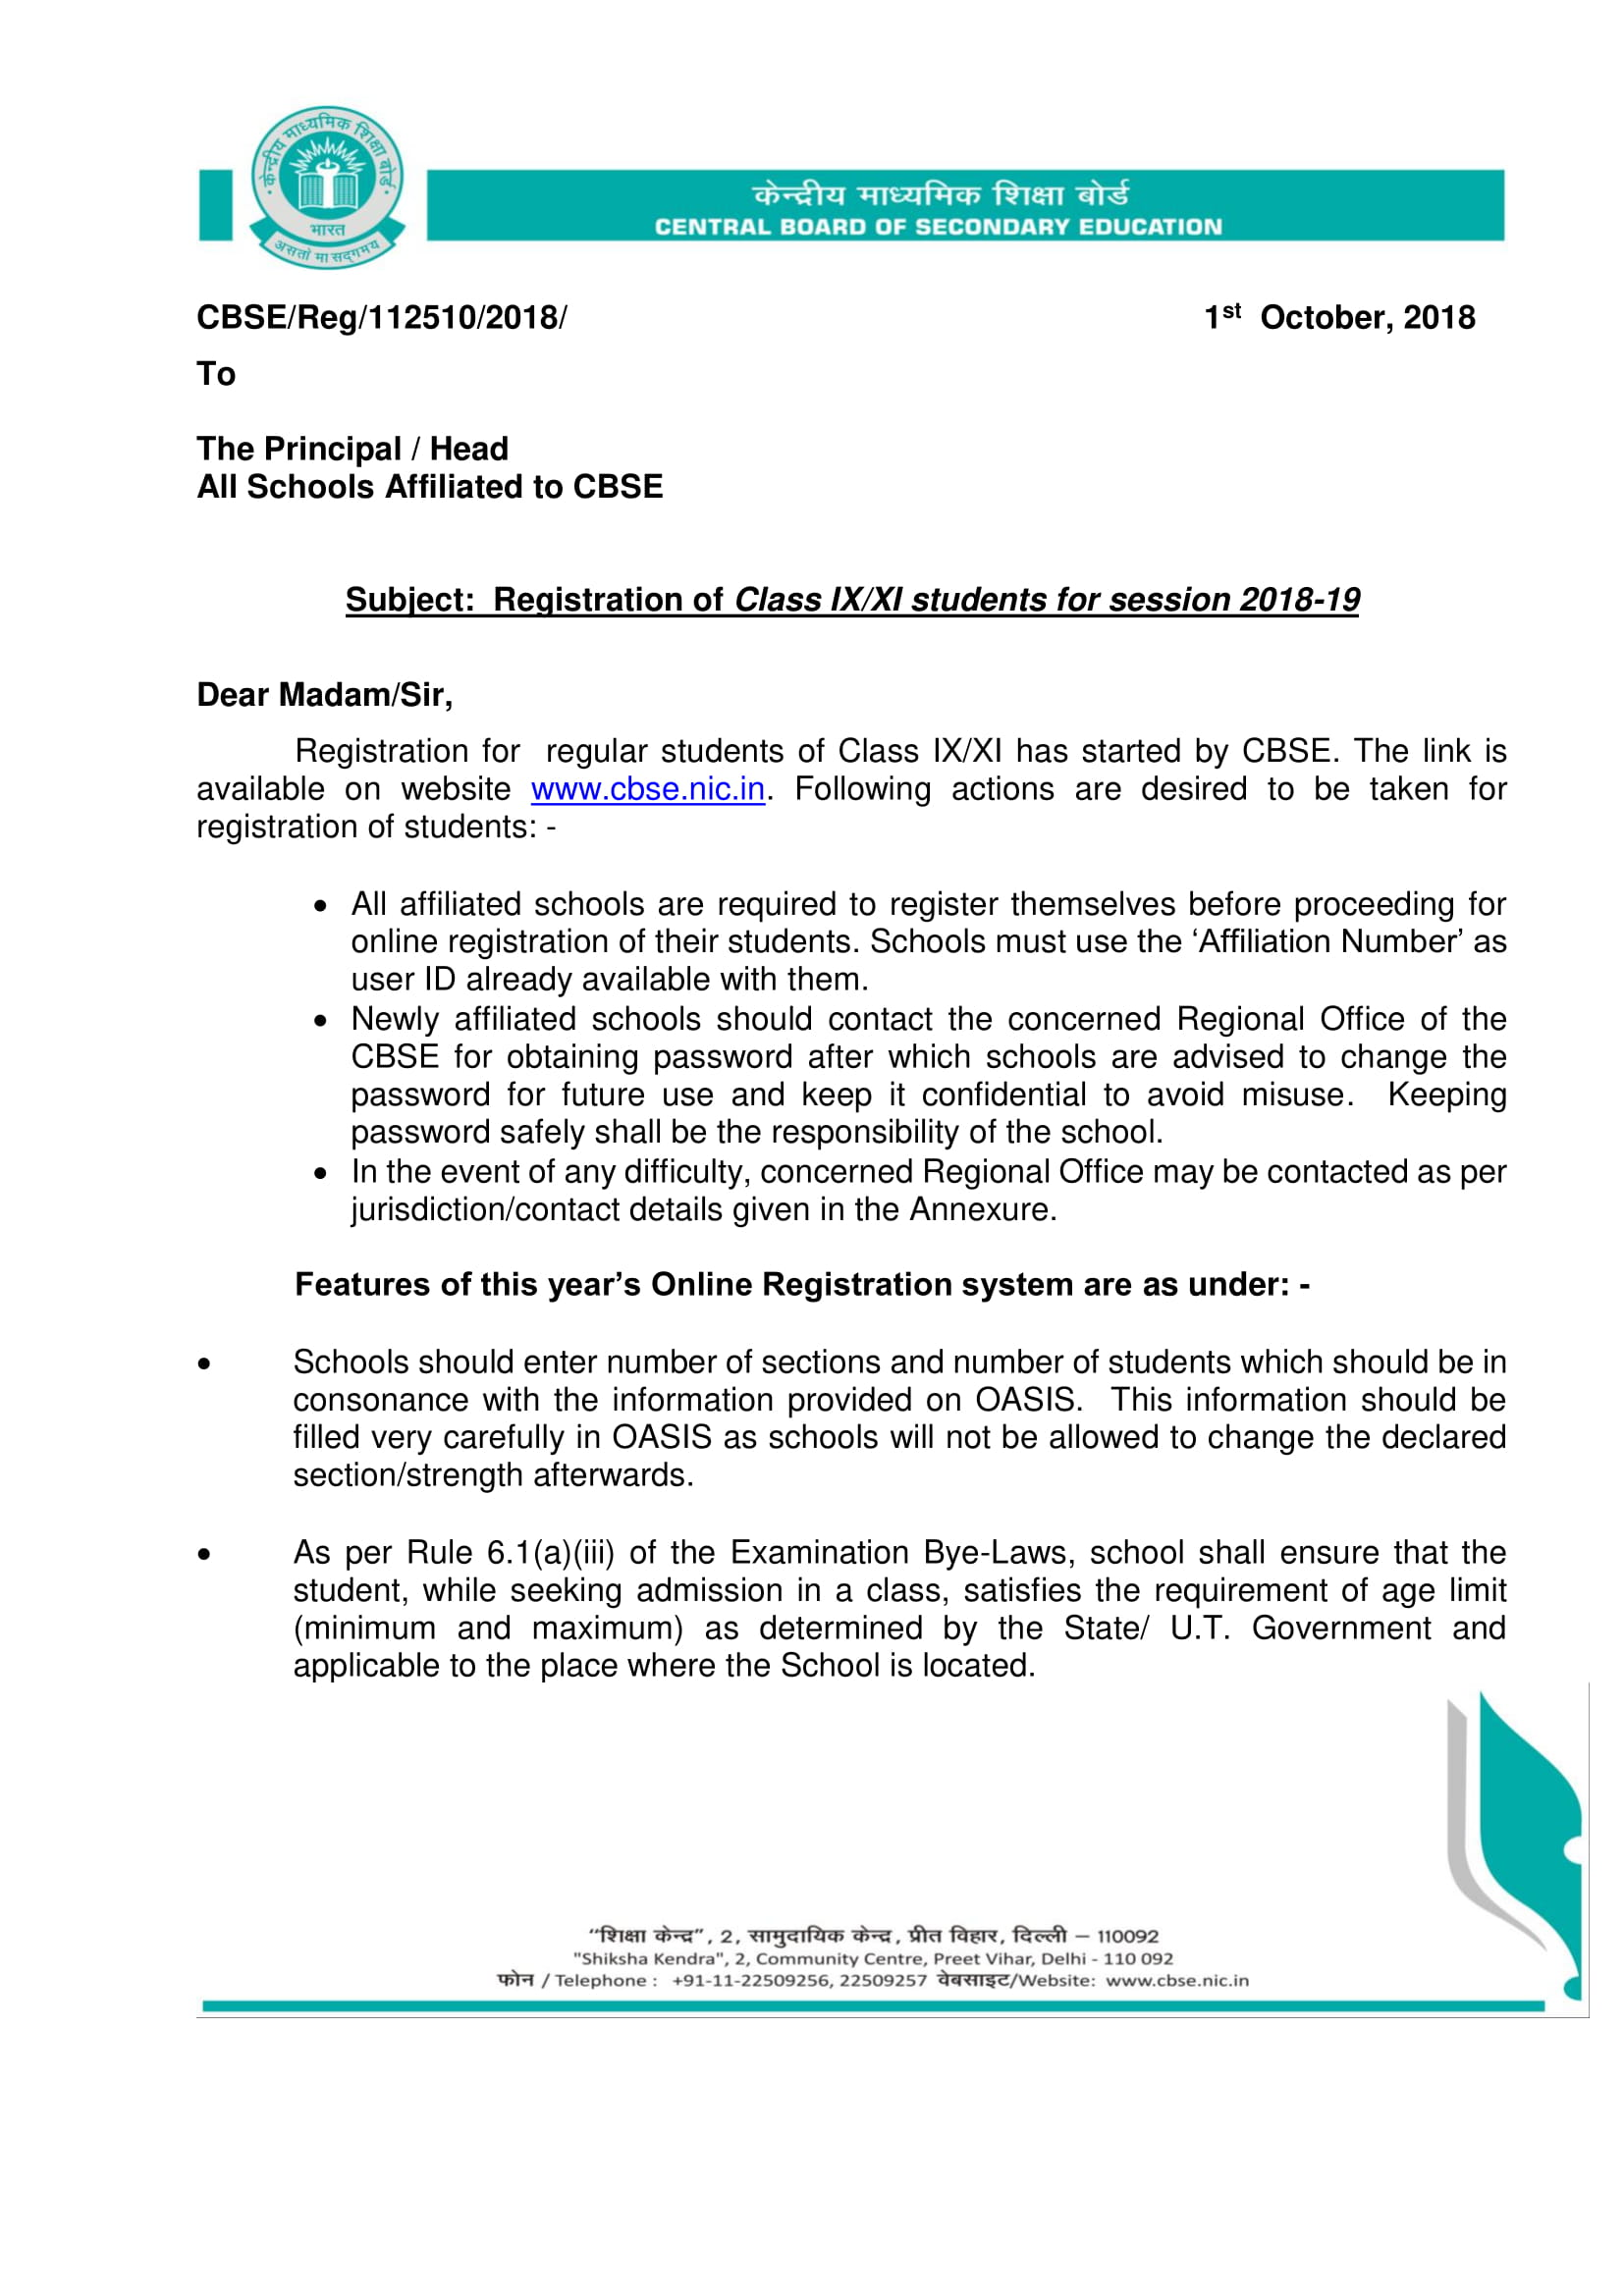 CBSE Online Registration for Class 9, 11 LOC Academic Year 2018-19 CBSE/Reg/112510/2018/ 1st October, 2018 To The Principal / Head All Schools Affiliated to CBSE Subject: Registration of Class IX/XI students for session 2018-19 Dear Madam/Sir, Registration for regular students of Class IX/XI has started by CBSE. The link is available on website www.cbse.nic.in. Following actions are desired to be taken for registration of students: - • All affiliated schools are required to register themselves before proceeding for online registration of their students. Schools must use the 'Affiliation Number' as user ID already available with them. • Newly affiliated schools should contact the concerned Regional Office of the CBSE for obtaining password after which schools are advised to change the password for future use and keep it confidential to avoid misuse. Keeping password safely shall be the responsibility of the school. • In the event of any difficulty, concerned Regional Office may be contacted as per jurisdiction/contact details given in the Annexure. Features of this year's Online Registration system are as under: - • Schools should enter number of sections and number of students which should be in consonance with the information provided on OASIS. This information should be filled very carefully in OASIS as schools will not be allowed to change the declared section/strength afterwards. • As per Rule 6.1(a)(iii) of the Examination Bye-Laws, school shall ensure that the student, while seeking admission in a class, satisfies the requirement of age limit (minimum and maximum) as determined by the State/ U.T. Government and applicable to the place where the School is located.